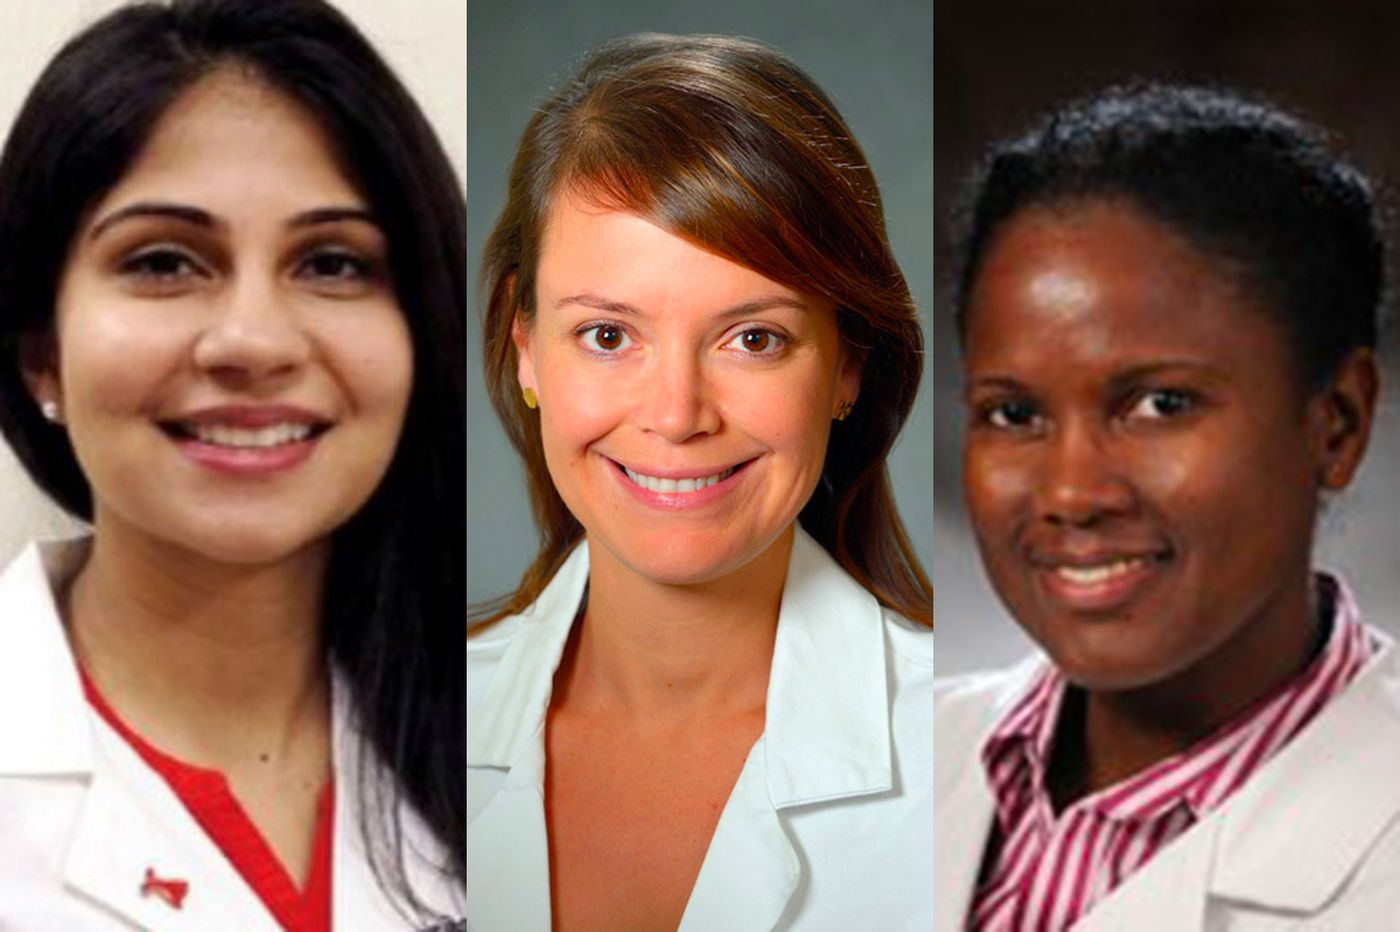 The one thing these cardiologists most wish their female patients had done sooner